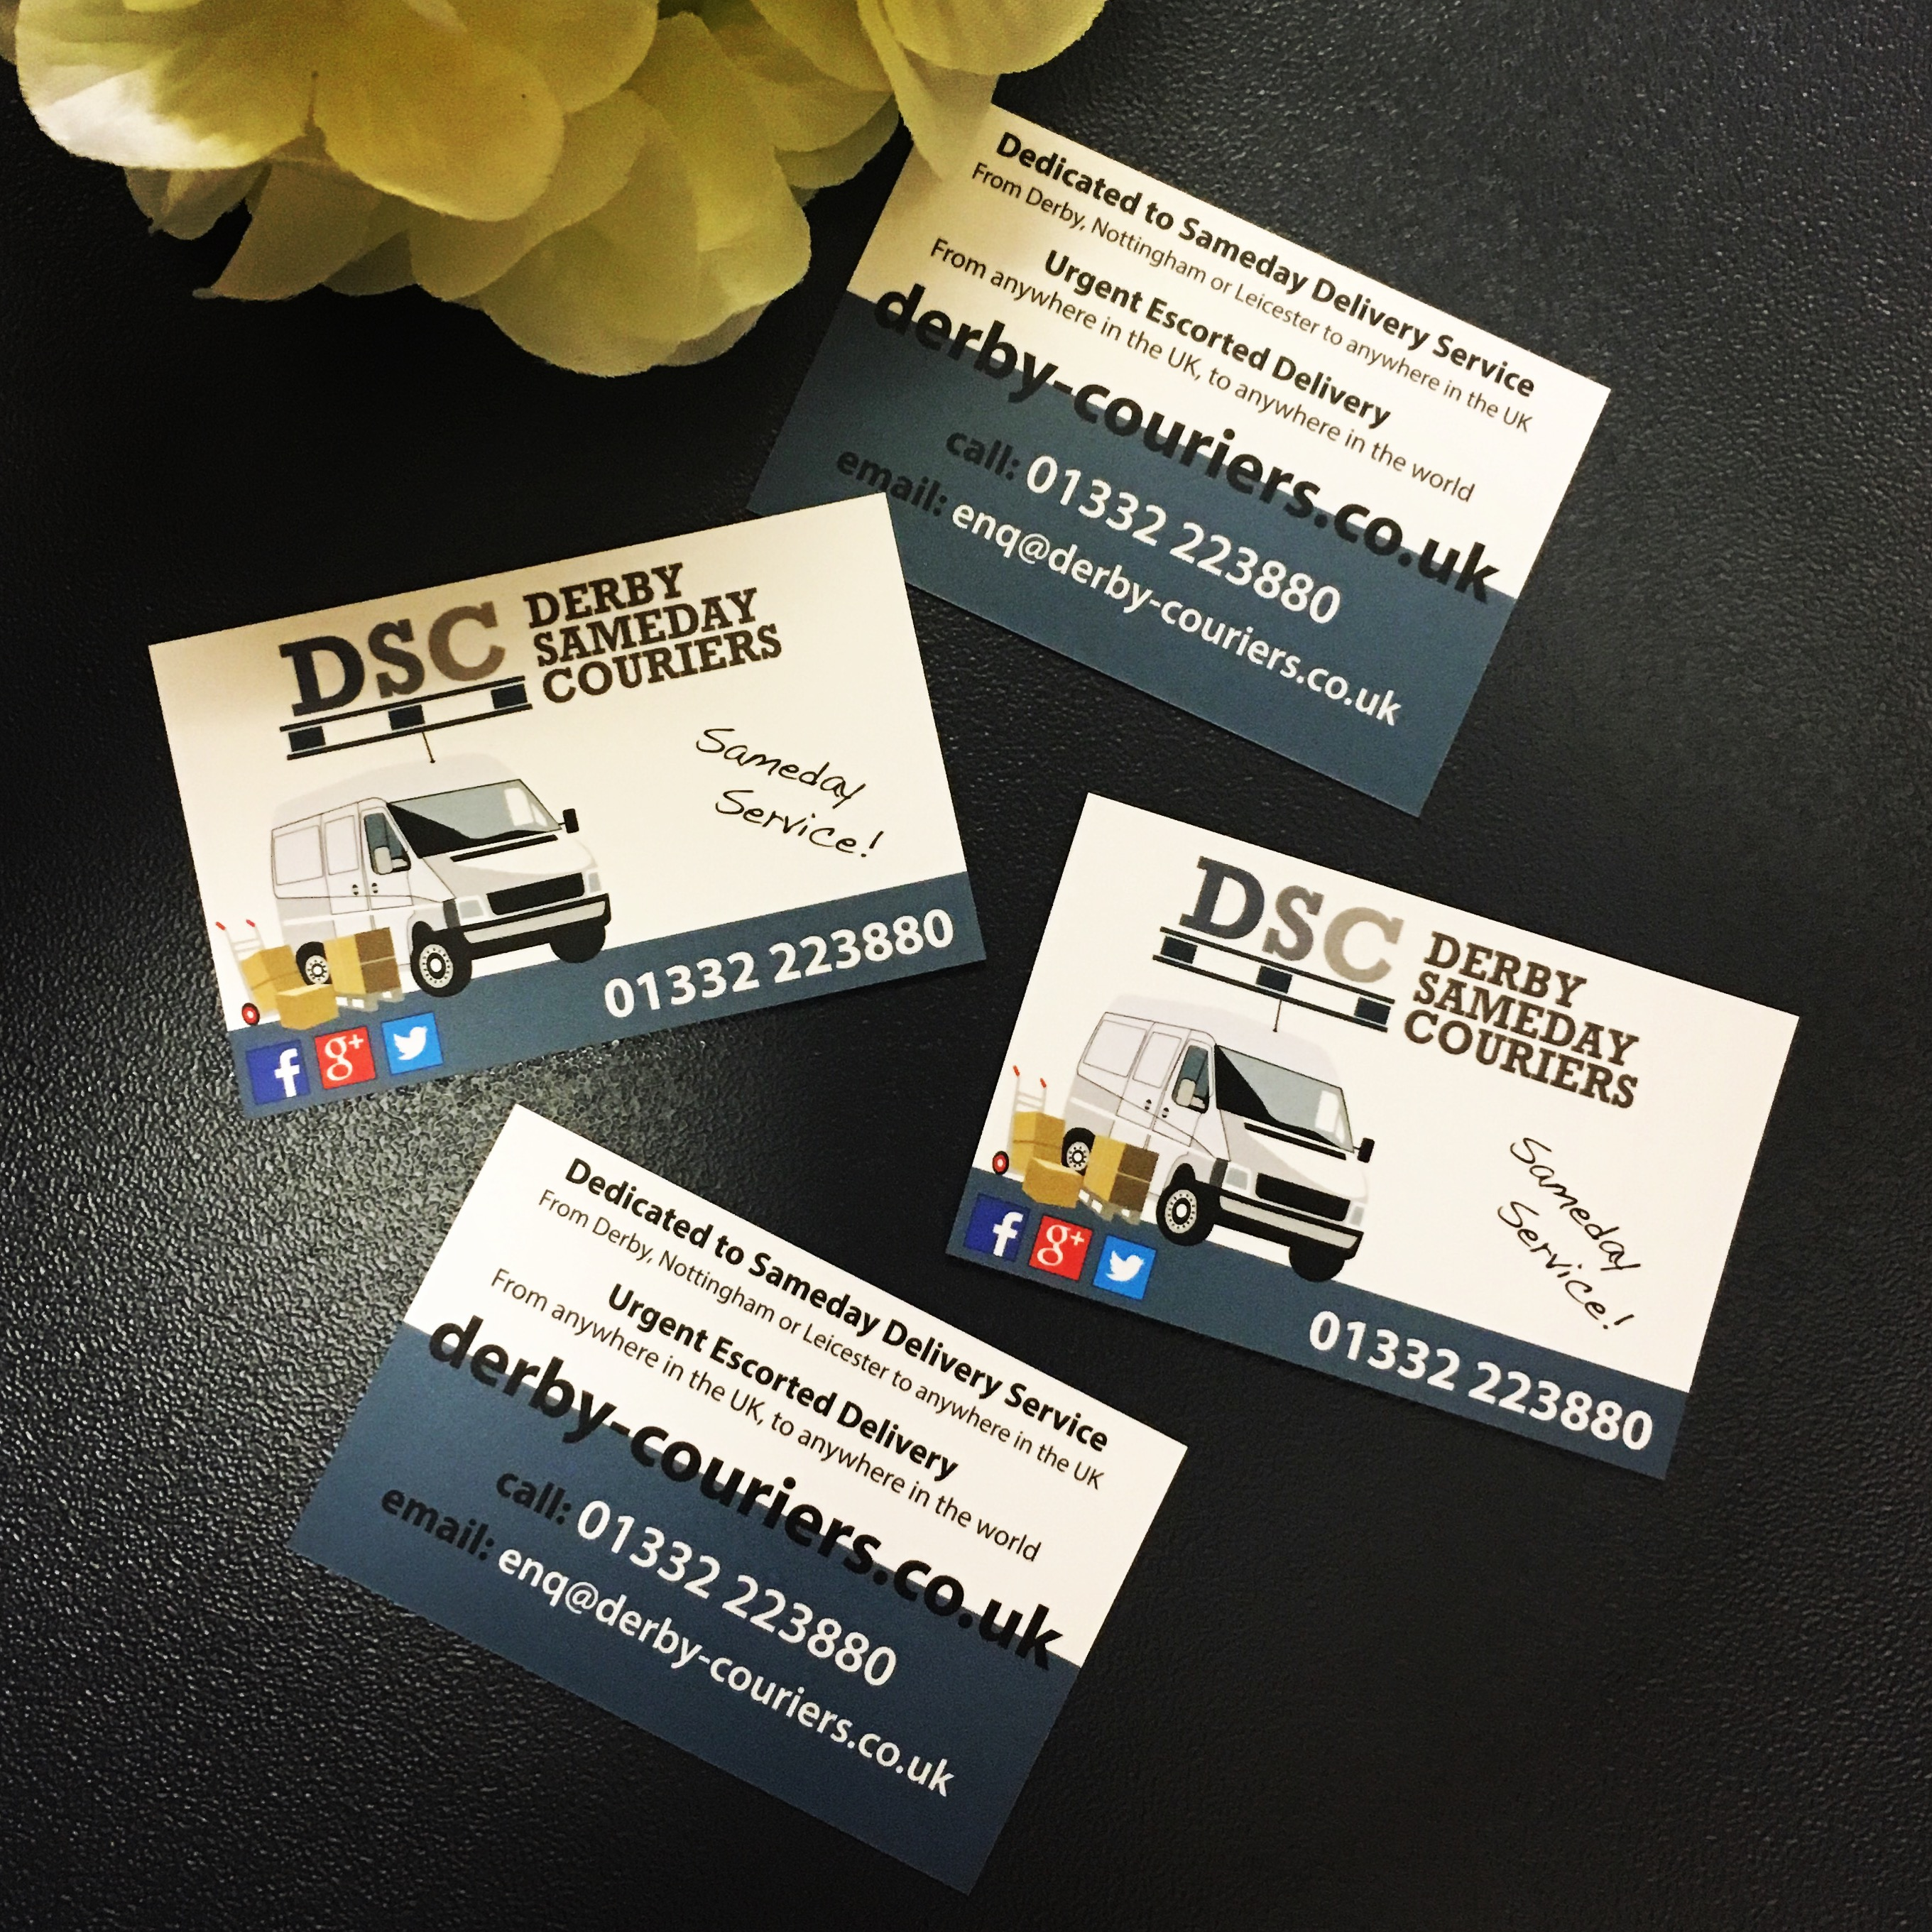 Business Cards - Derby SameDay Couriers | High Heel Creative